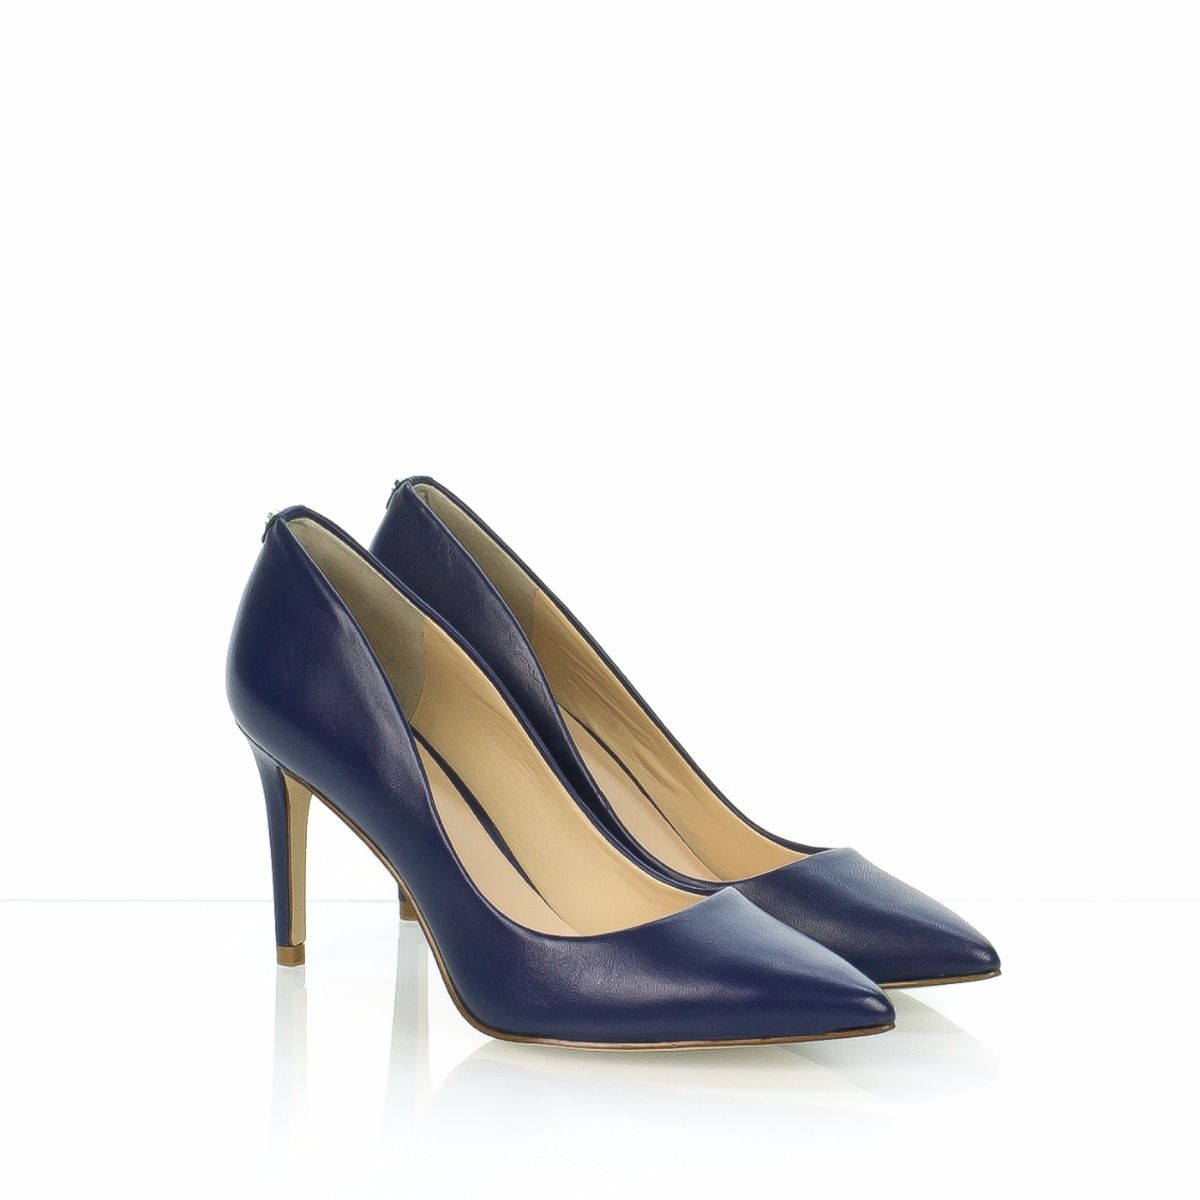 Decollete Donna Guess In Pelle Blu Zona Treviso